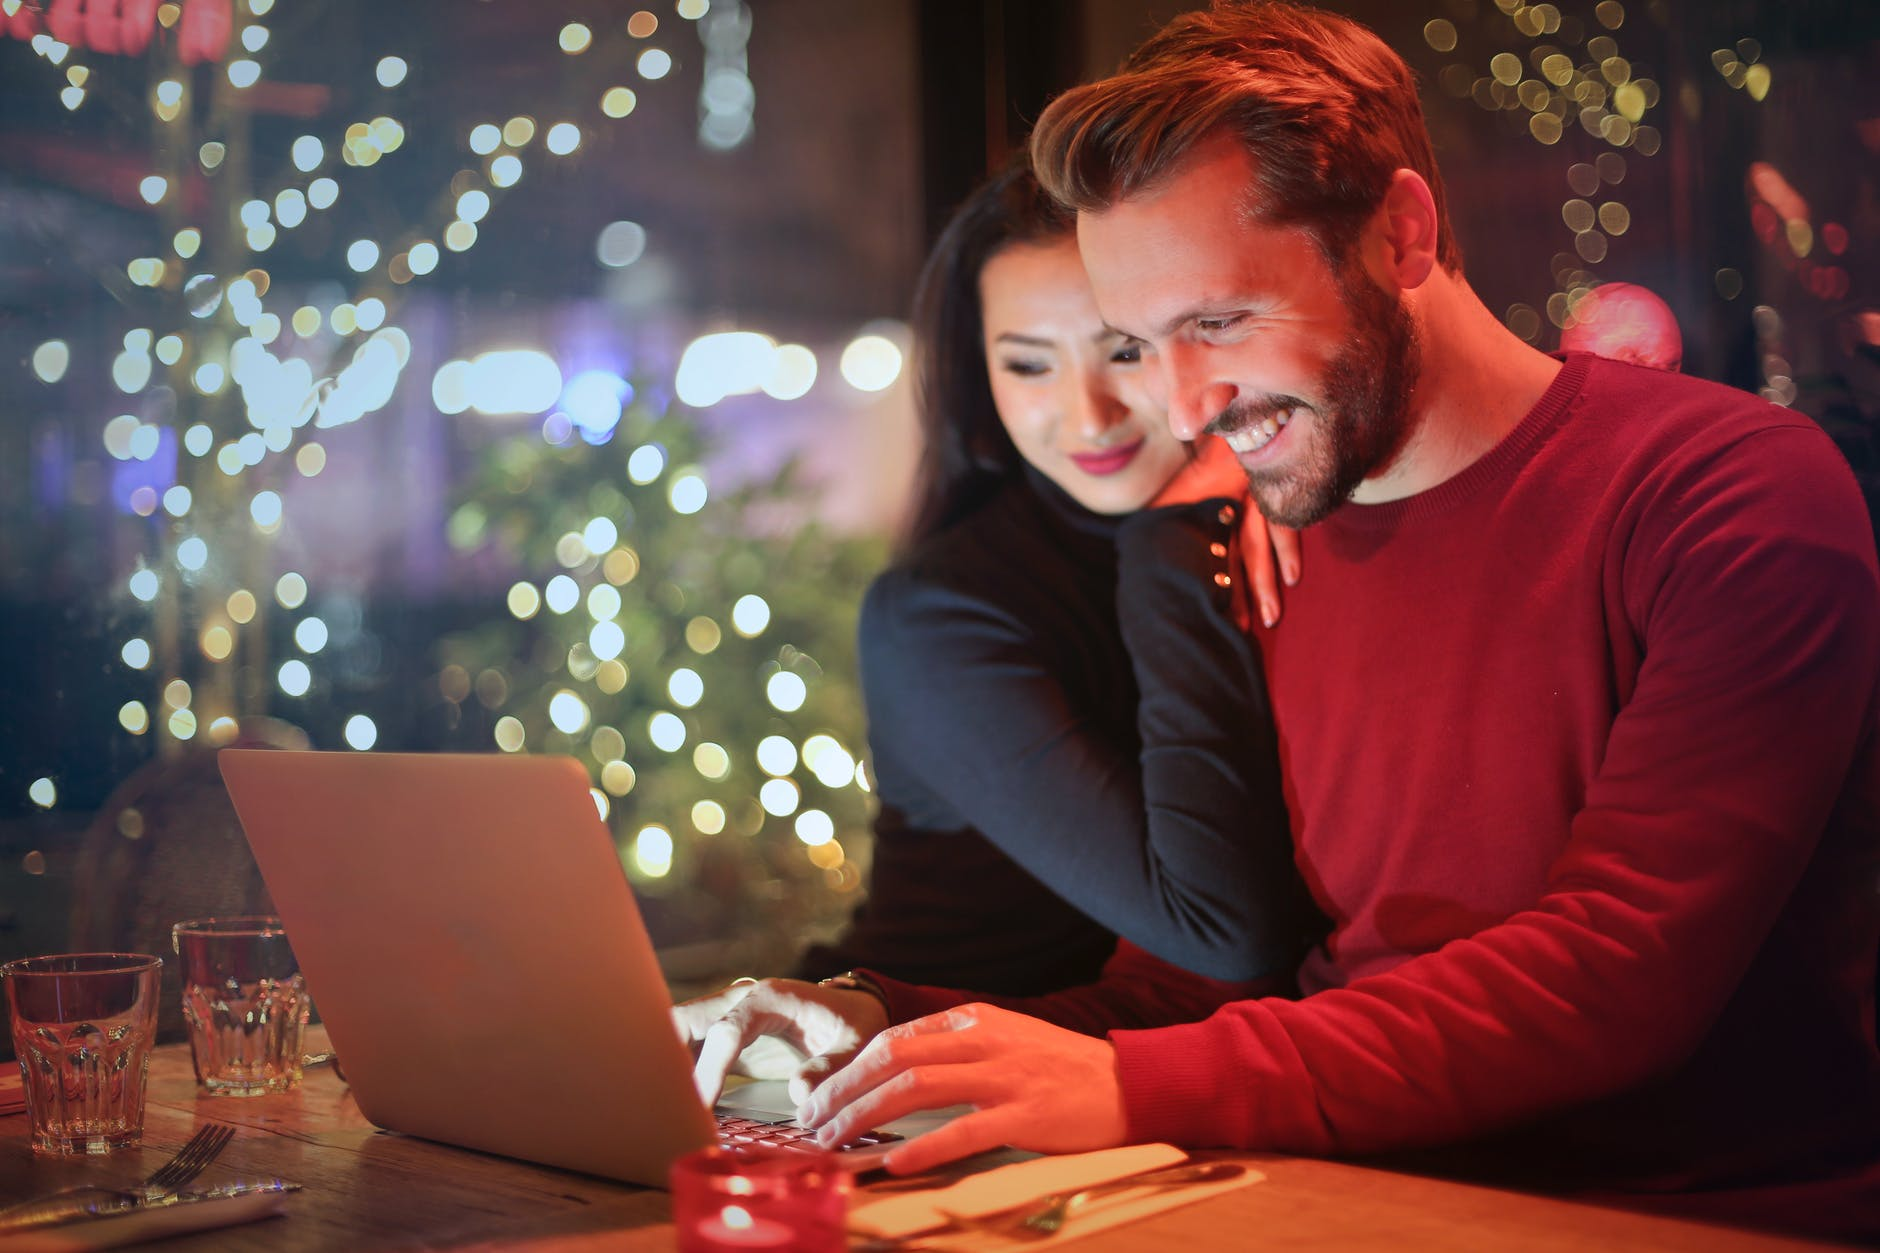 Top 5 digital gifts for him in 2020